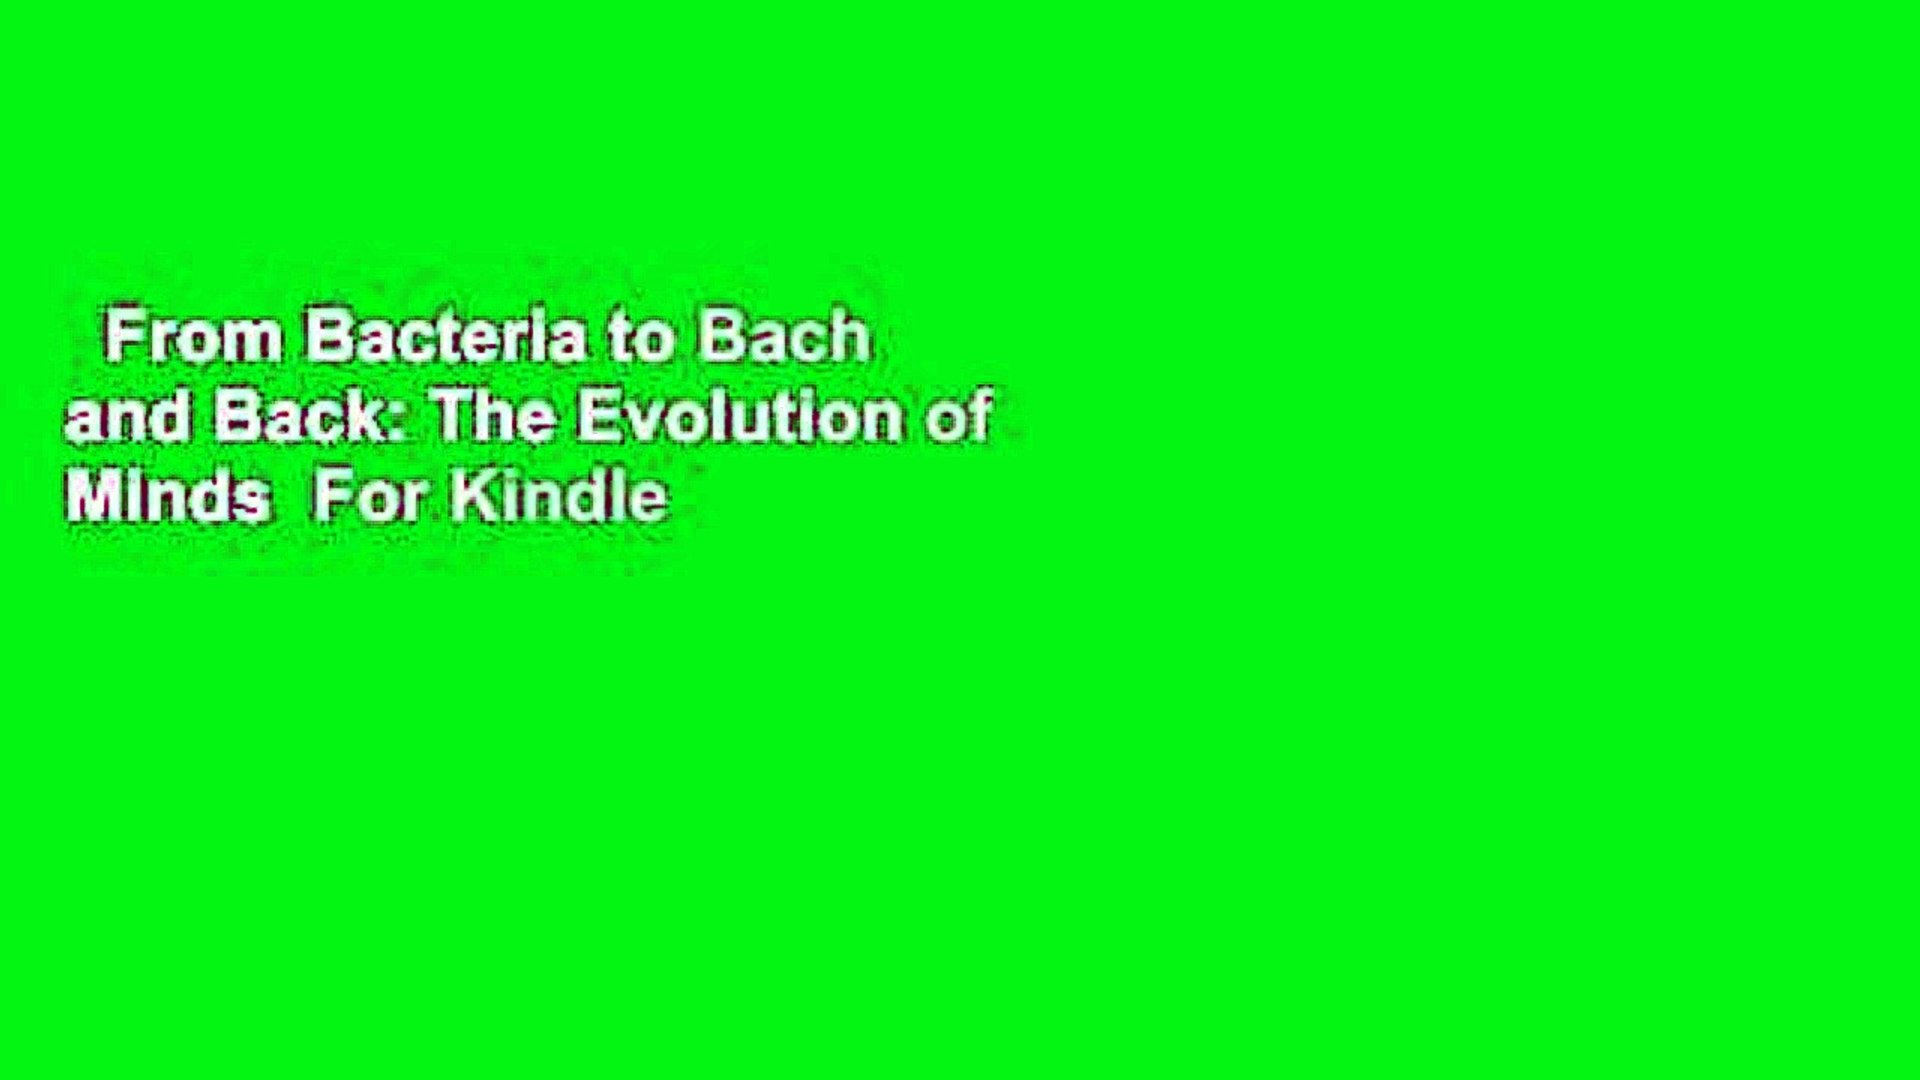 From Bacteria to Bach and Back: The Evolution of Minds  For Kindle